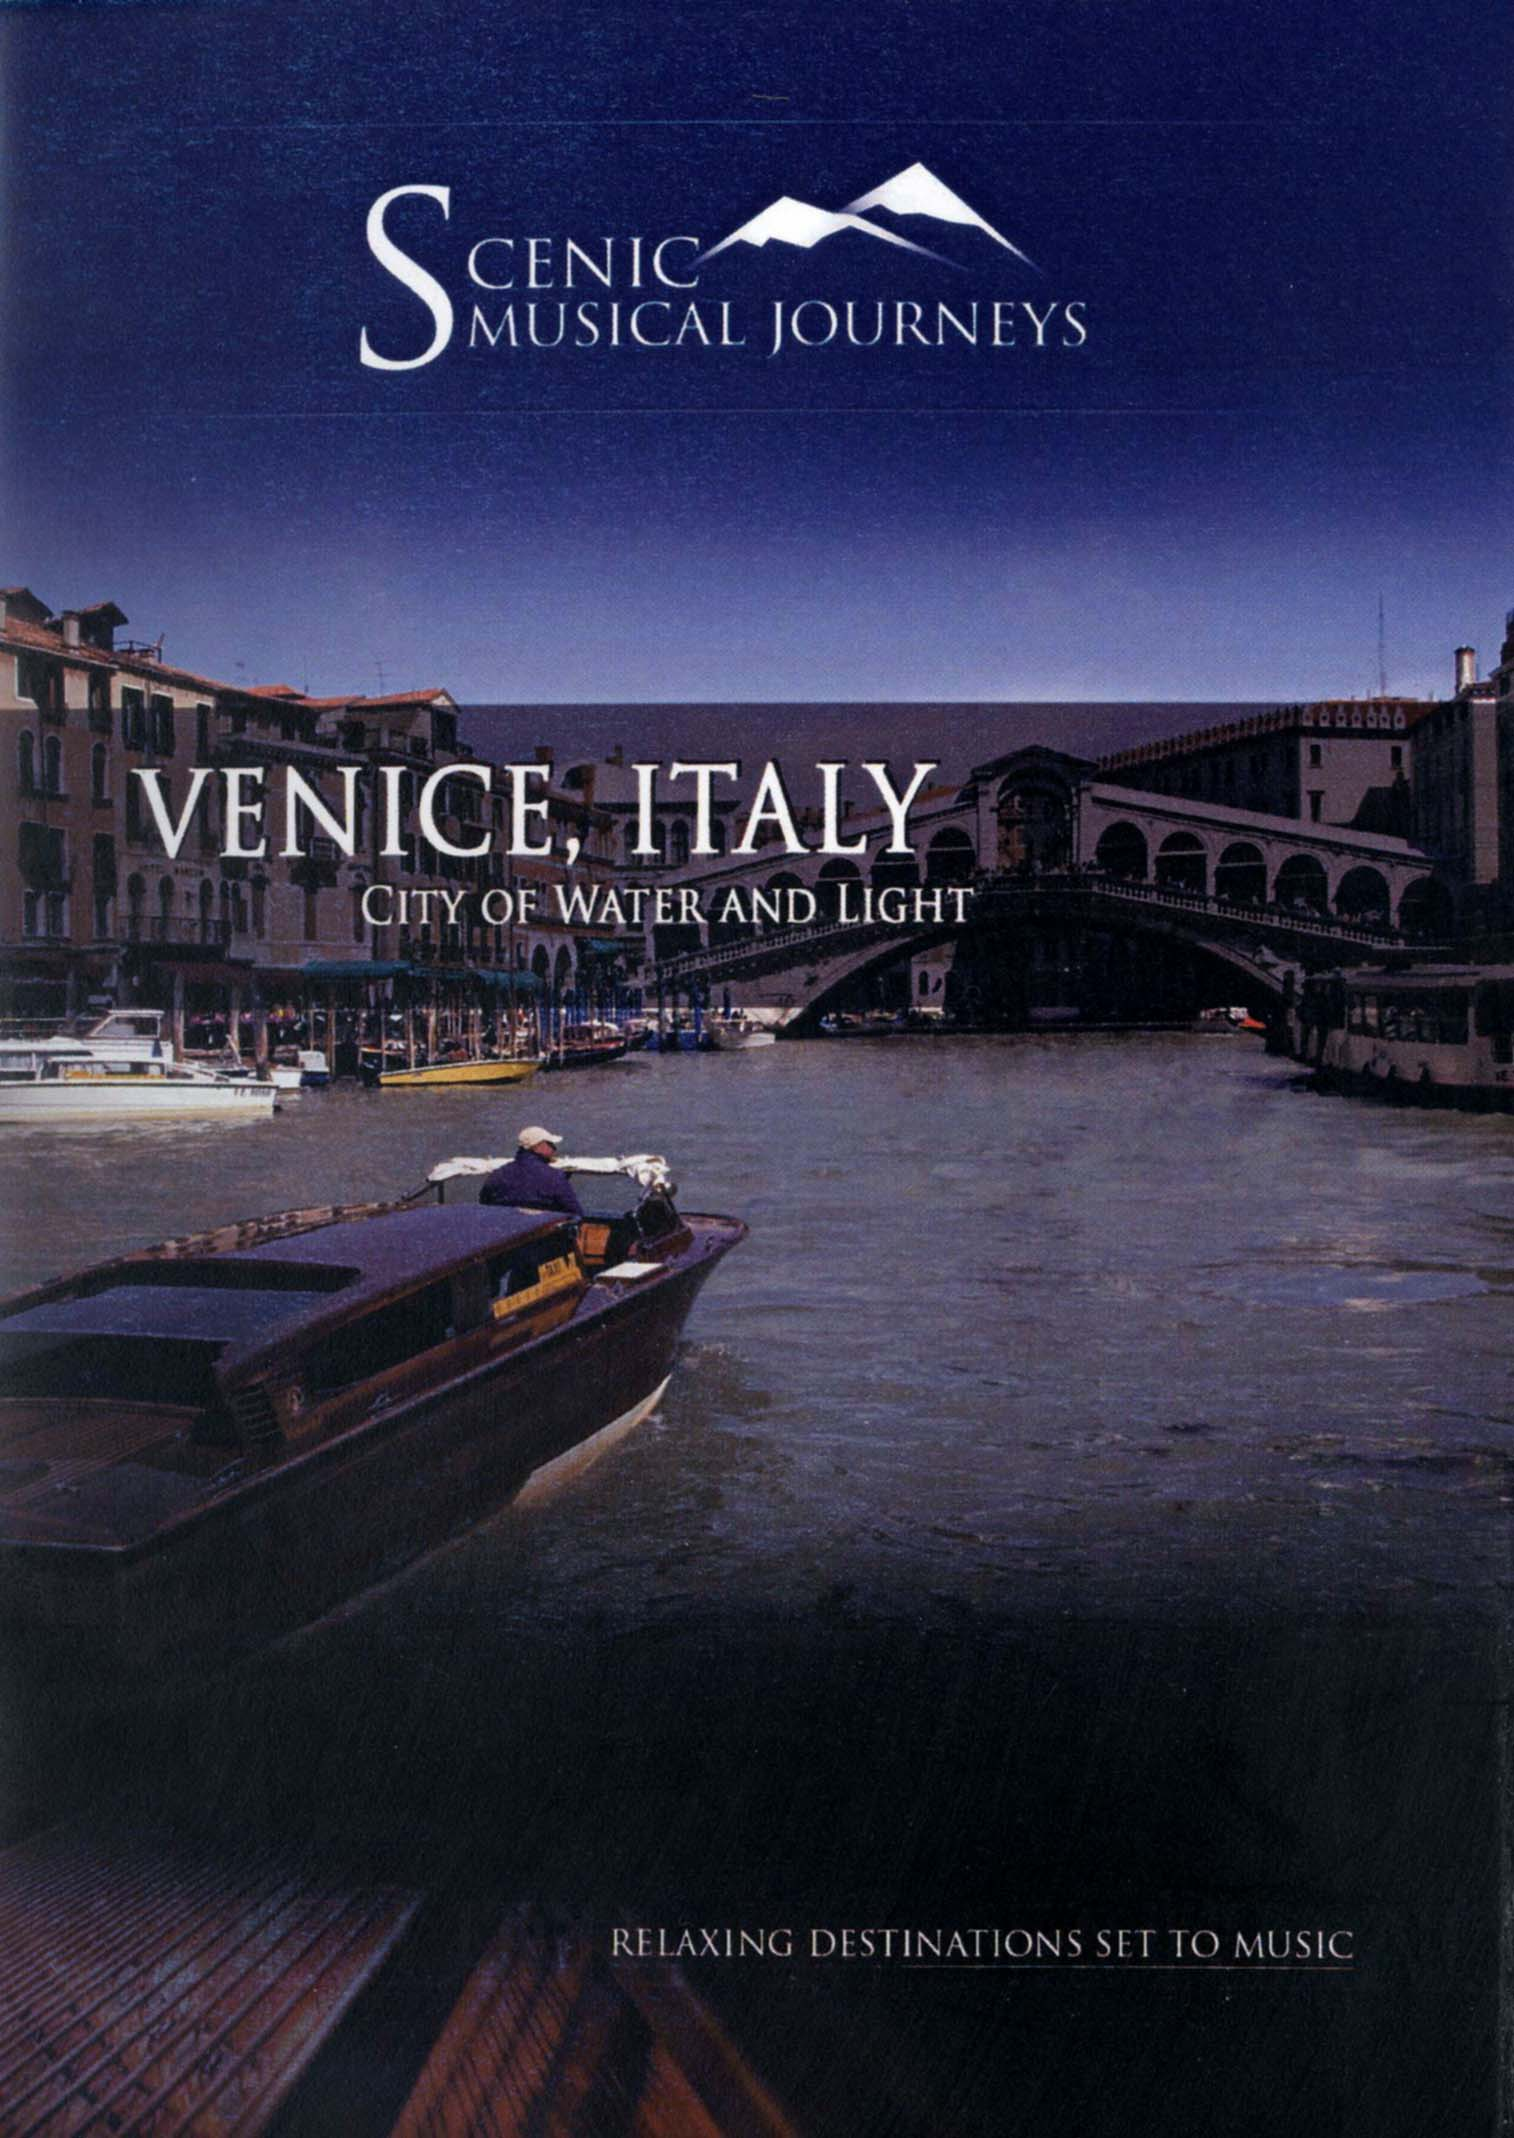 Scenic Musical Journeys: Venice, Italy - City of Water and Light